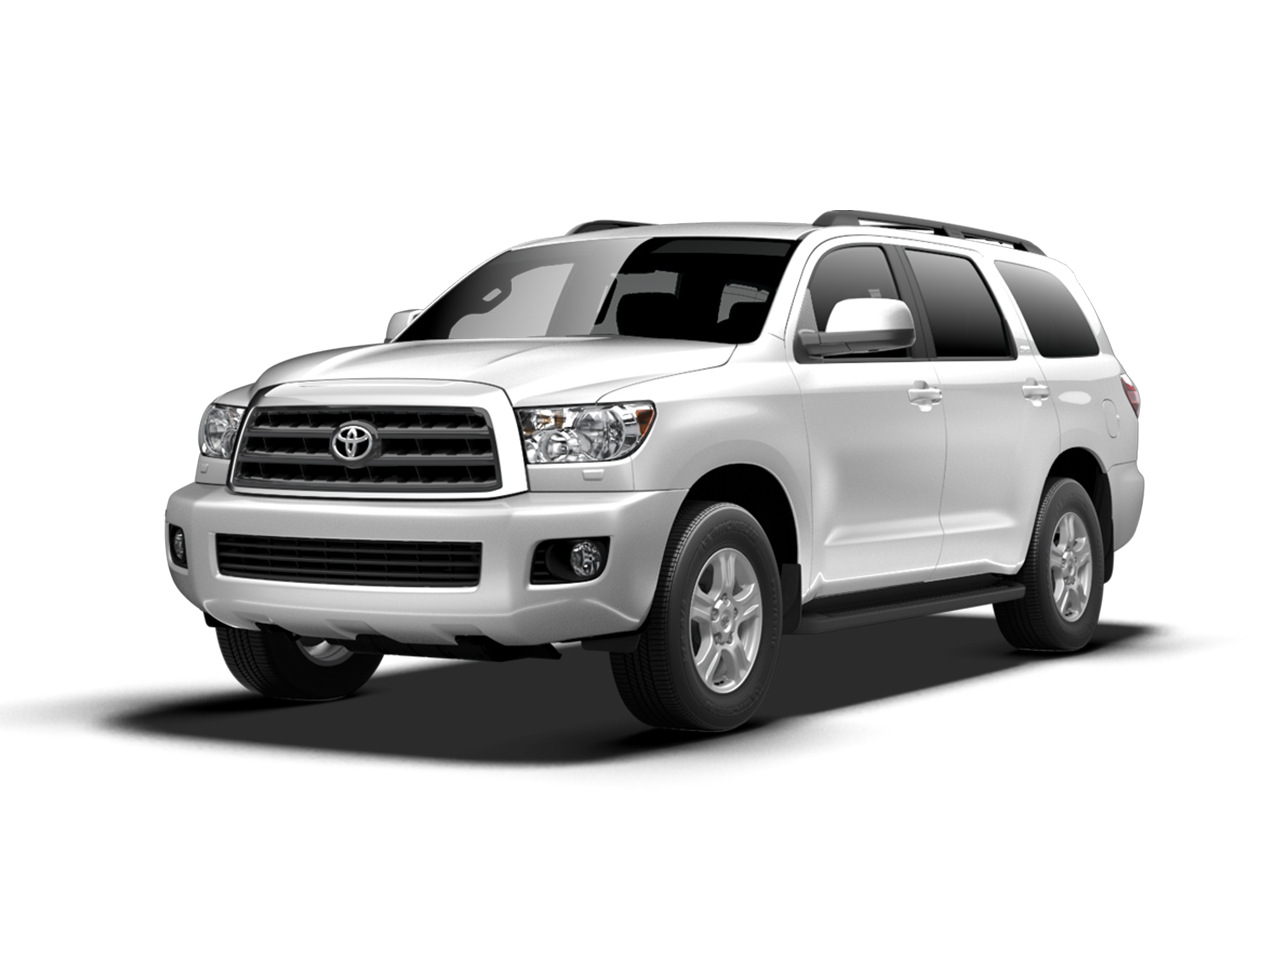 Test Drive A 2017 Toyota Sequoia at Romano Toyota in East Syracuse